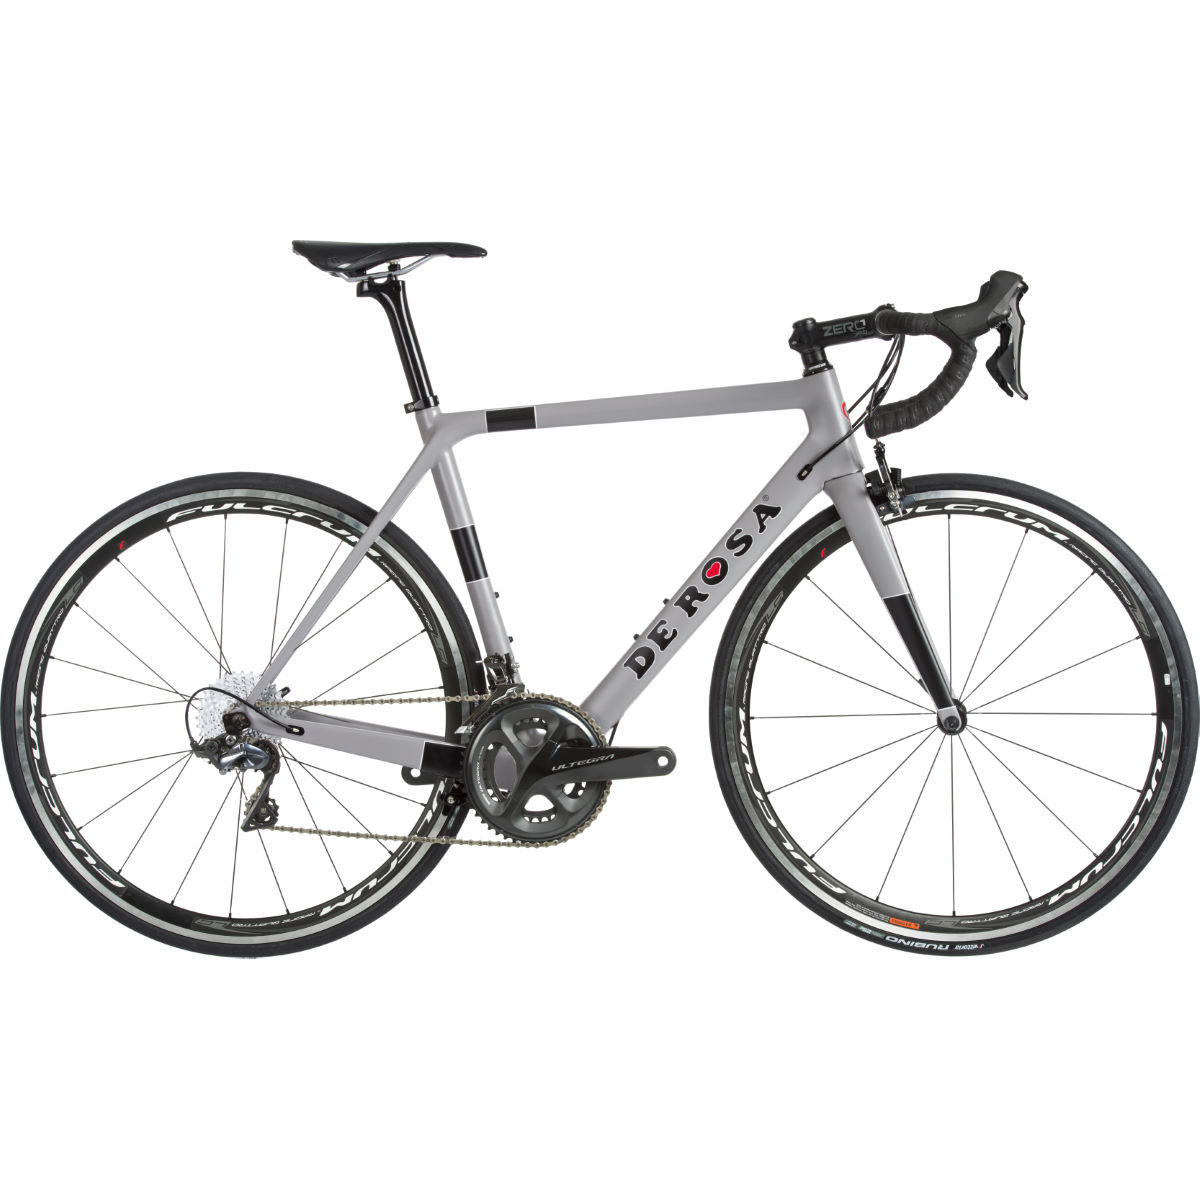 De rosa king xs ultegra 2018 road bike internal grey 2018 drkxsbk8000rqgrq0 0